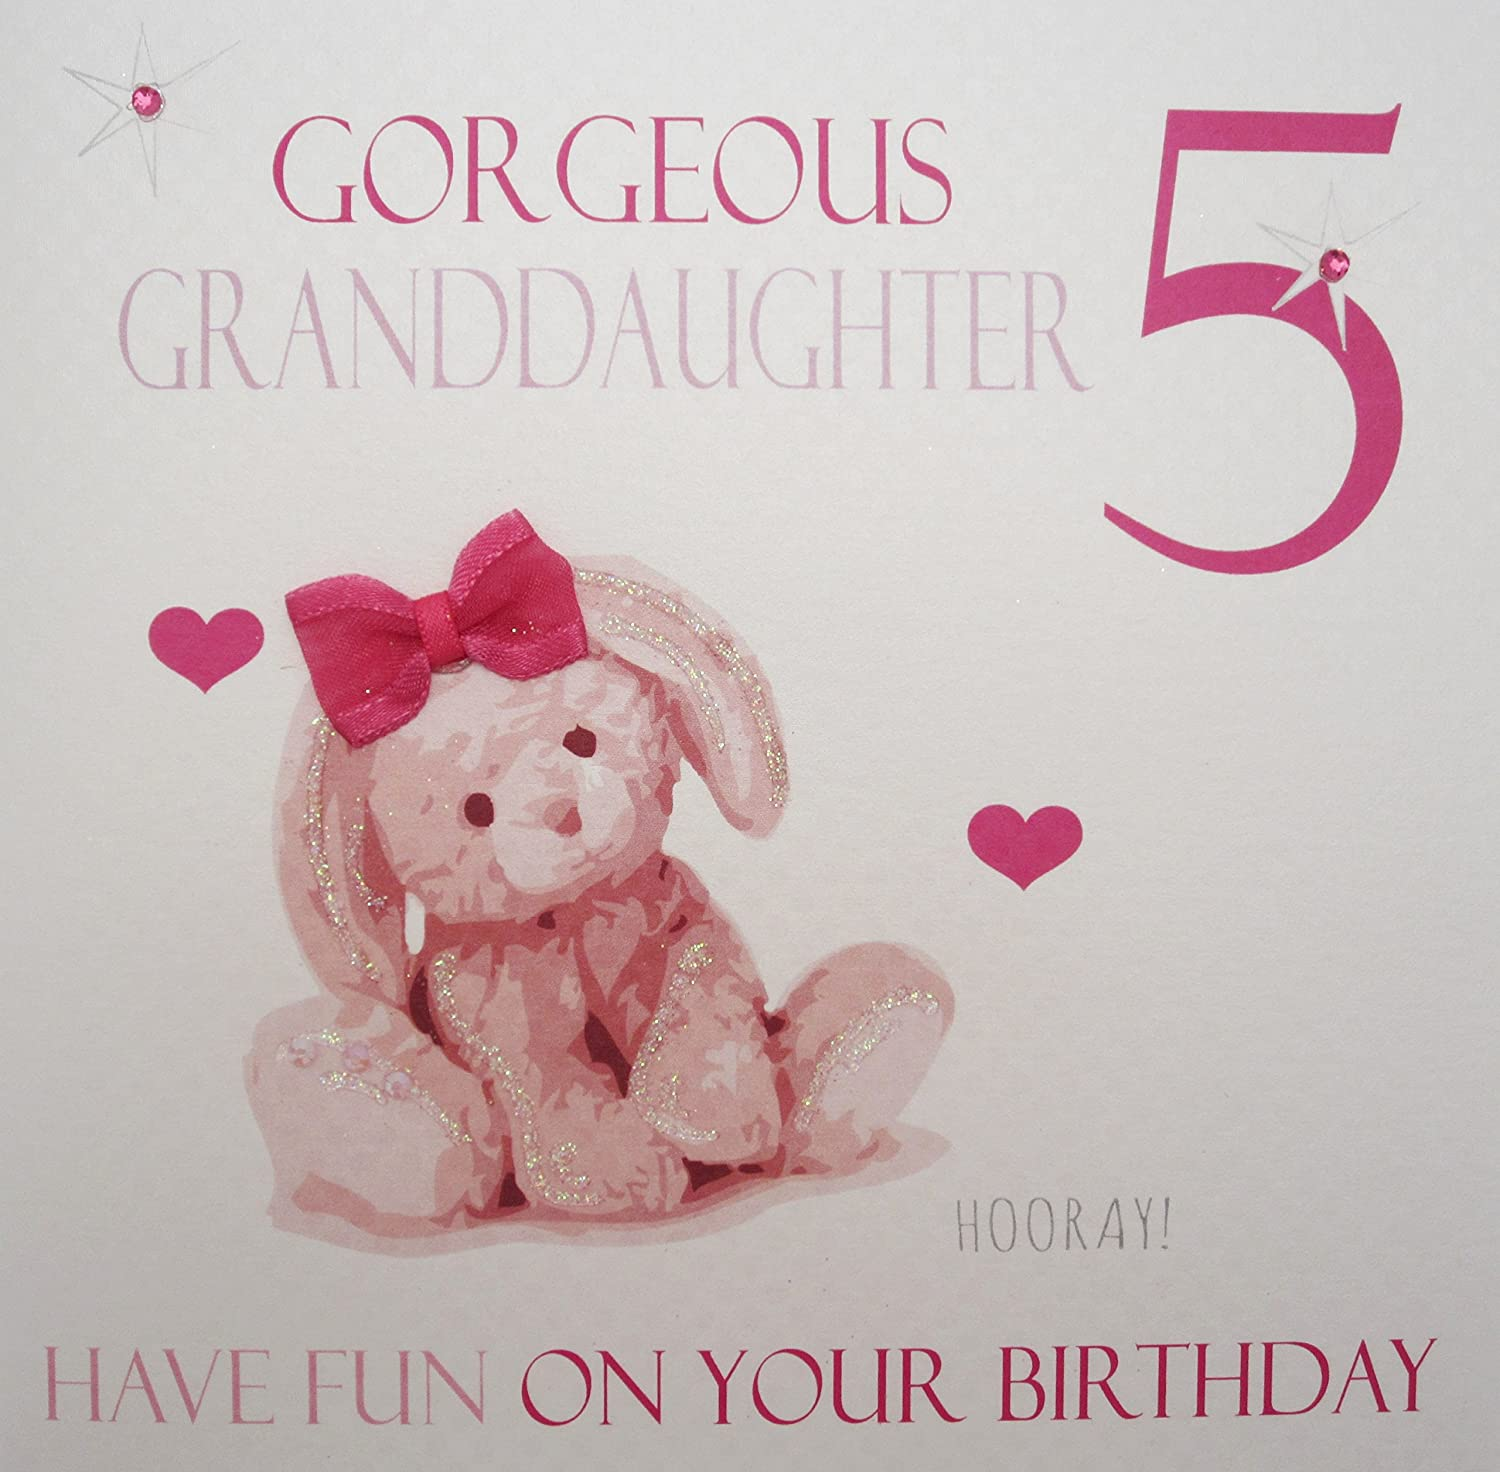 White cotton cards gorgeous granddaughter 5 pink bunny handmade white cotton cards gorgeous granddaughter 5 pink bunny handmade age 5 birthday card amazon kitchen home bookmarktalkfo Image collections